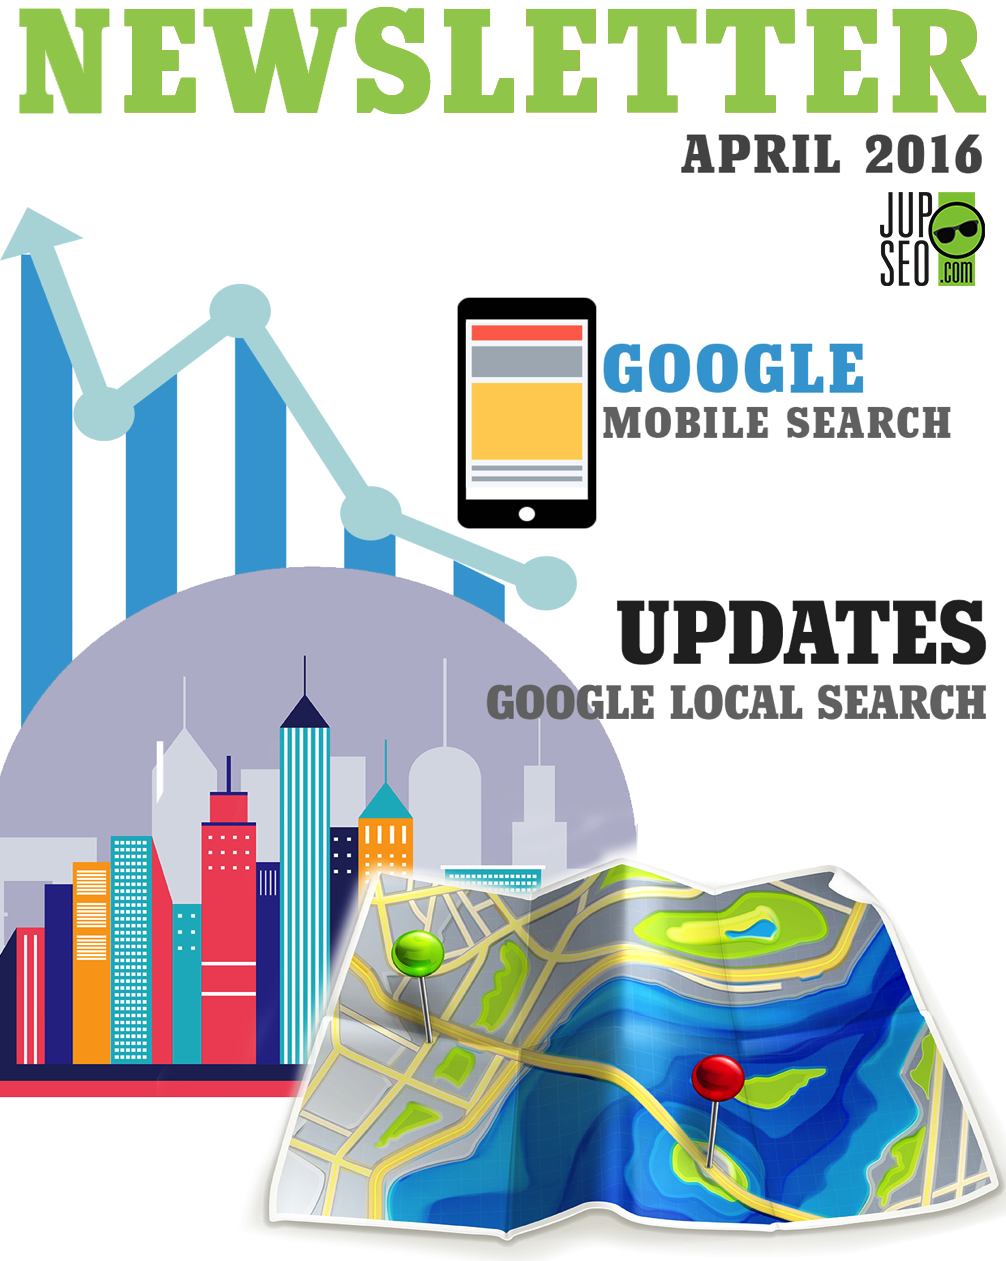 Jupiter SEO April 2016 Newsletter